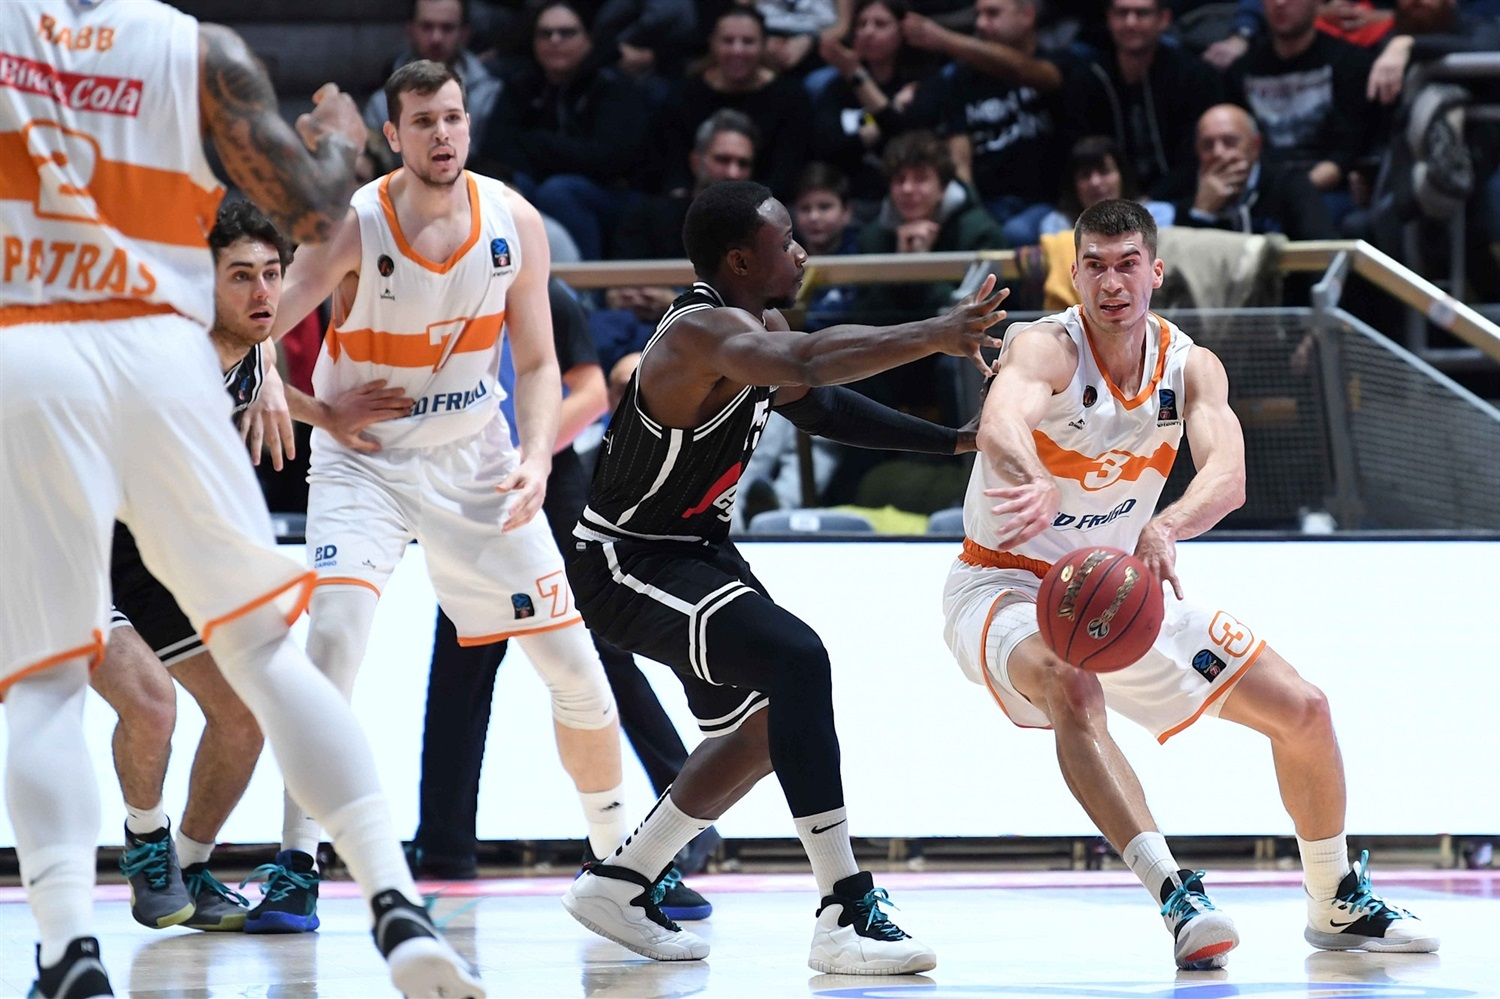 Oleksandr Lypovyy - Promitheas Patras (photo Virtus) - EC19